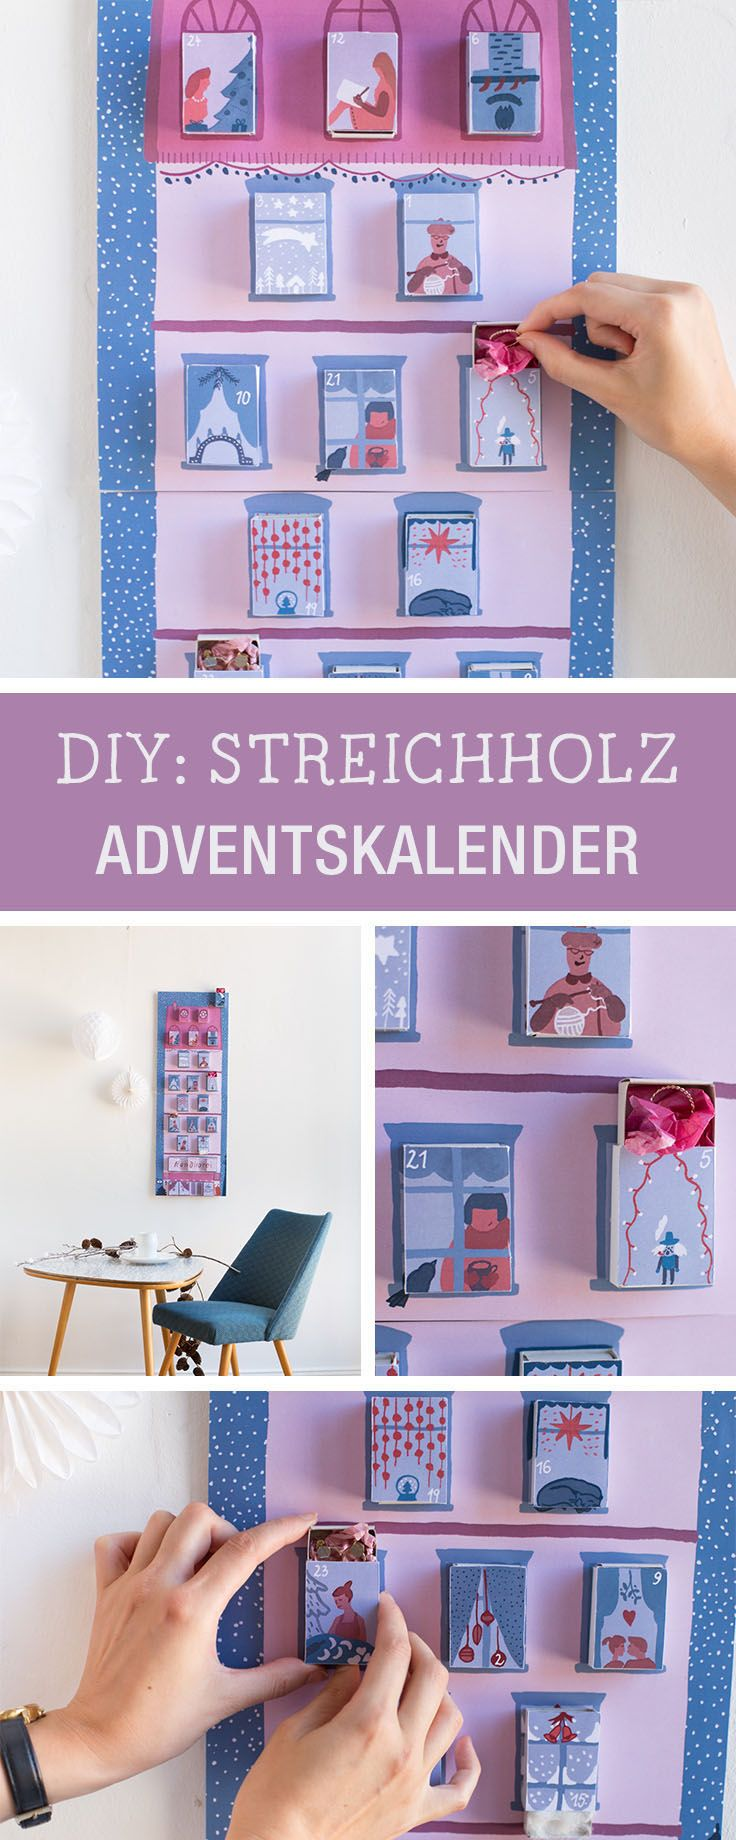 Adventskalender aus illustrierten Streichholzschachteln selbermachen, Vorlage zum Ausdrucken / free printable: illustrated advents calendar made of matchboxes via DaWanda.com